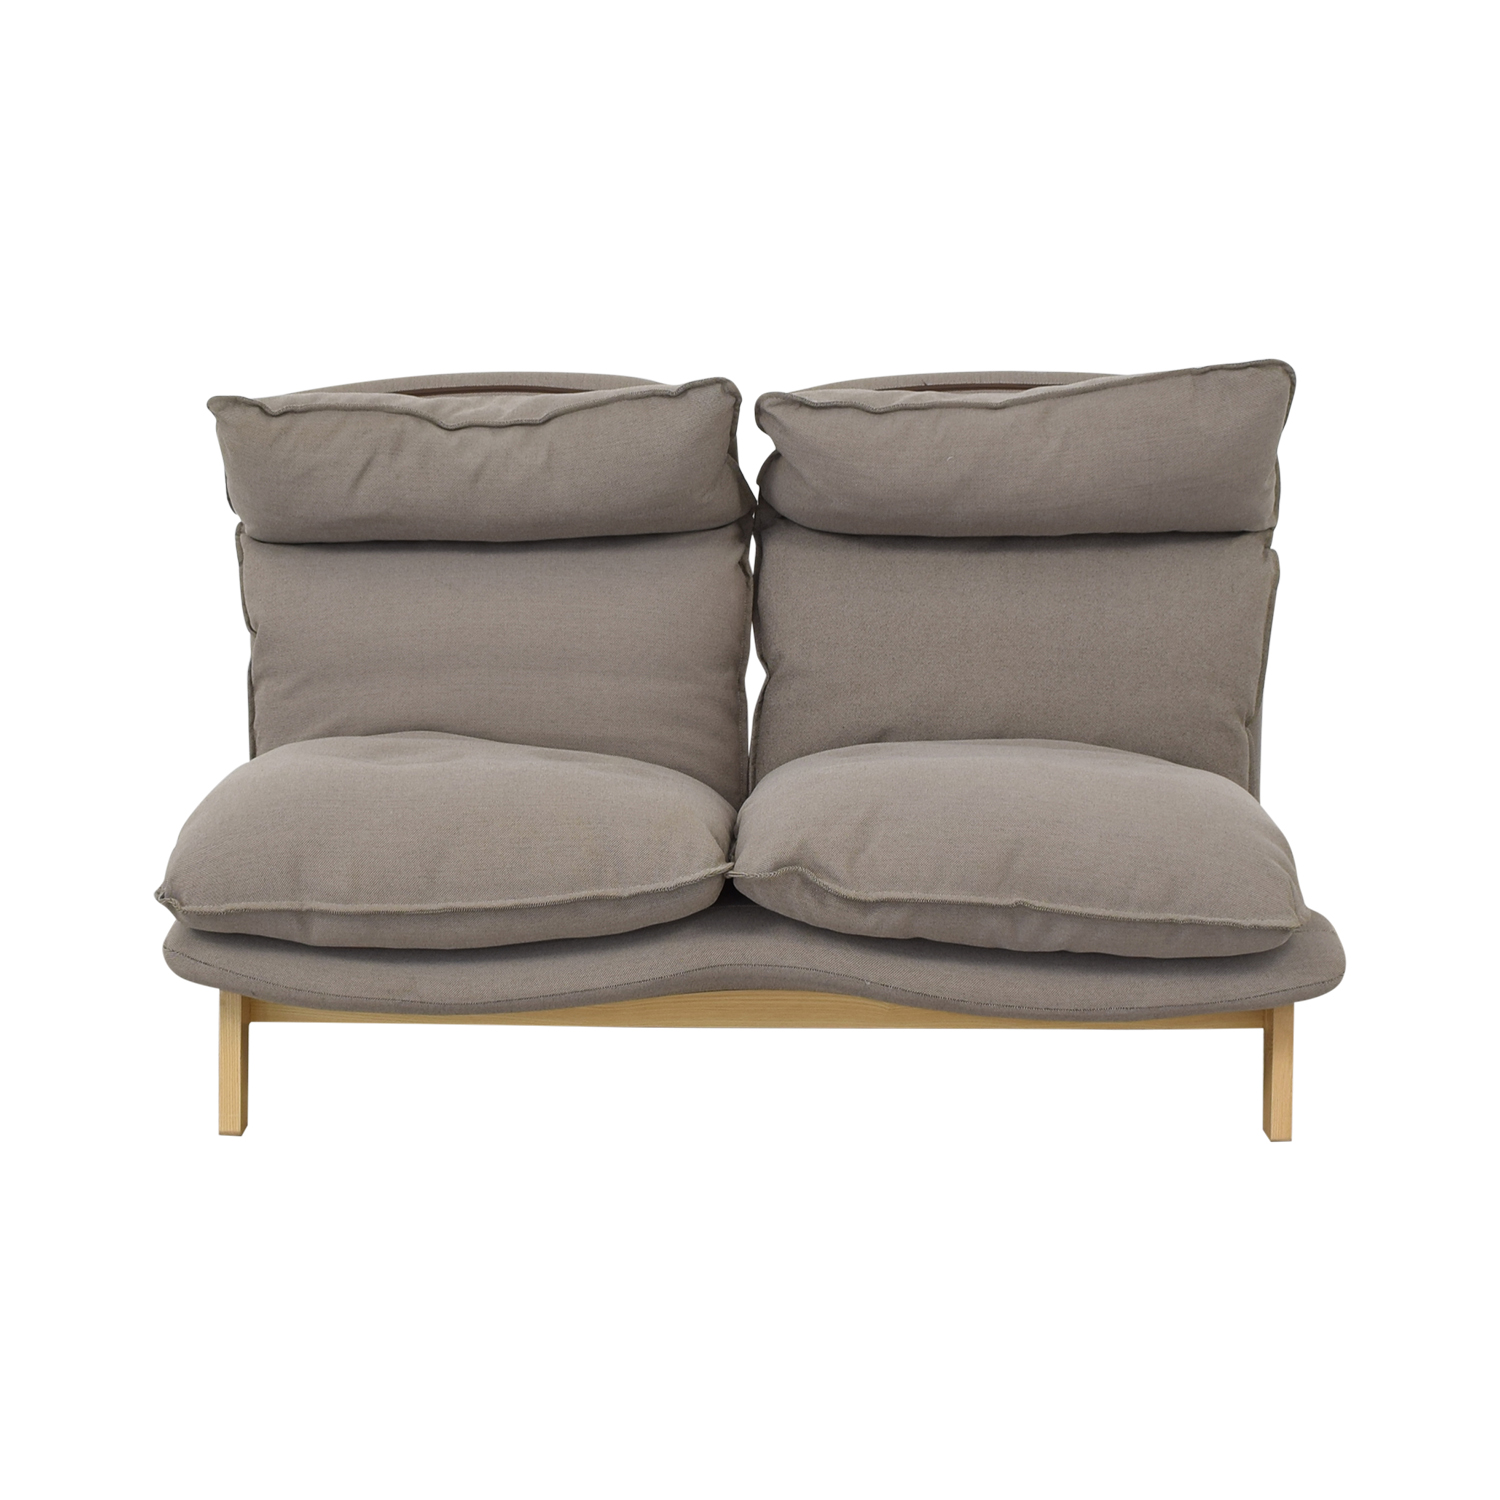 Muji Muji High Back Reclining Sofa Sofas